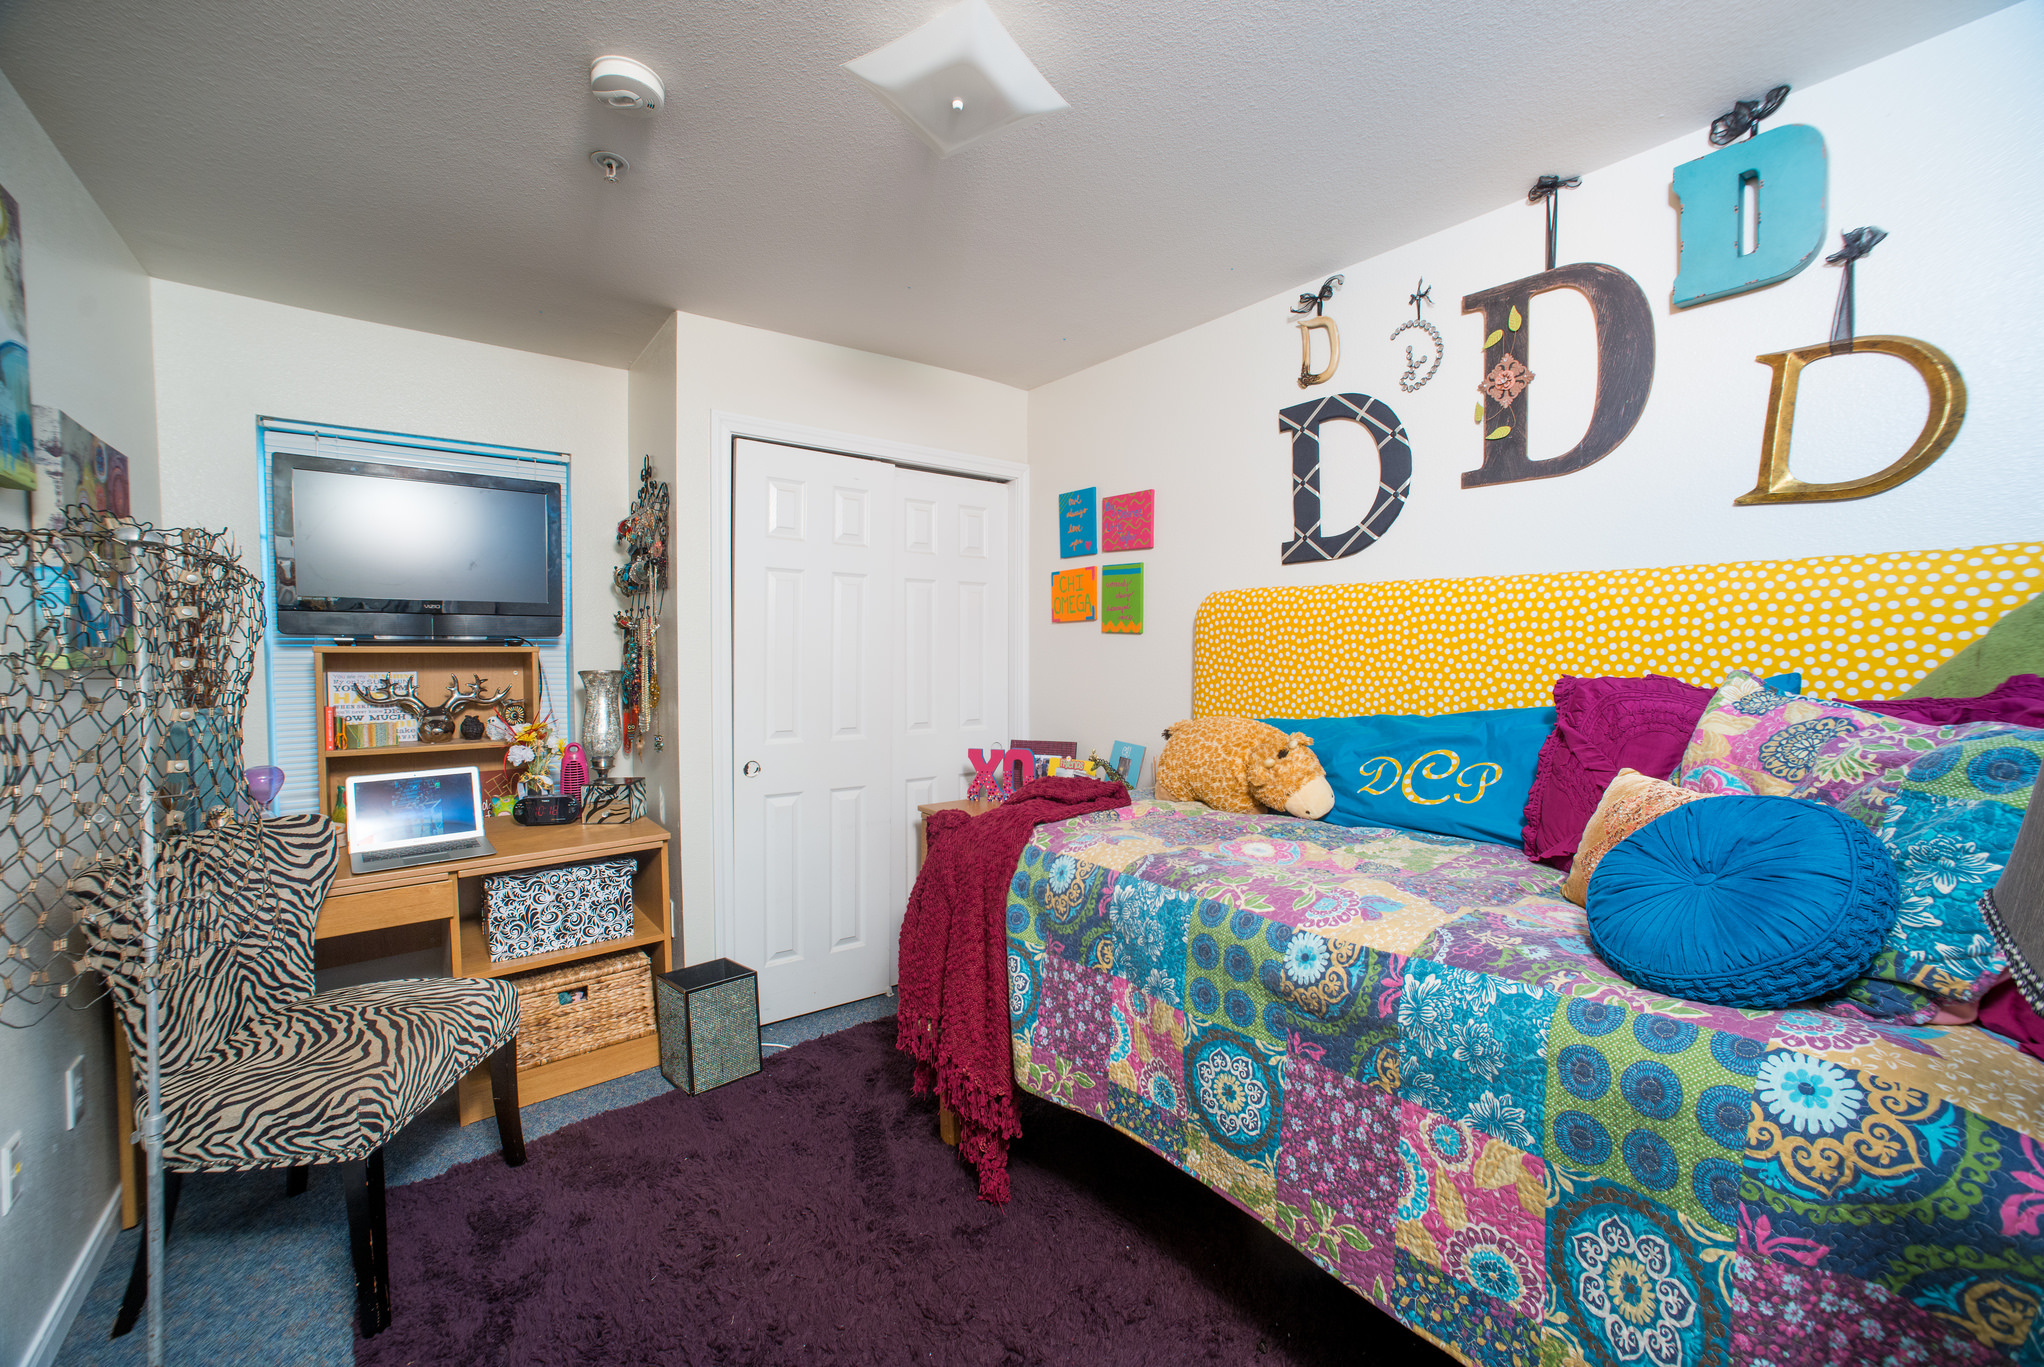 10 DIY Dorm Decorations That GWU Girls Love